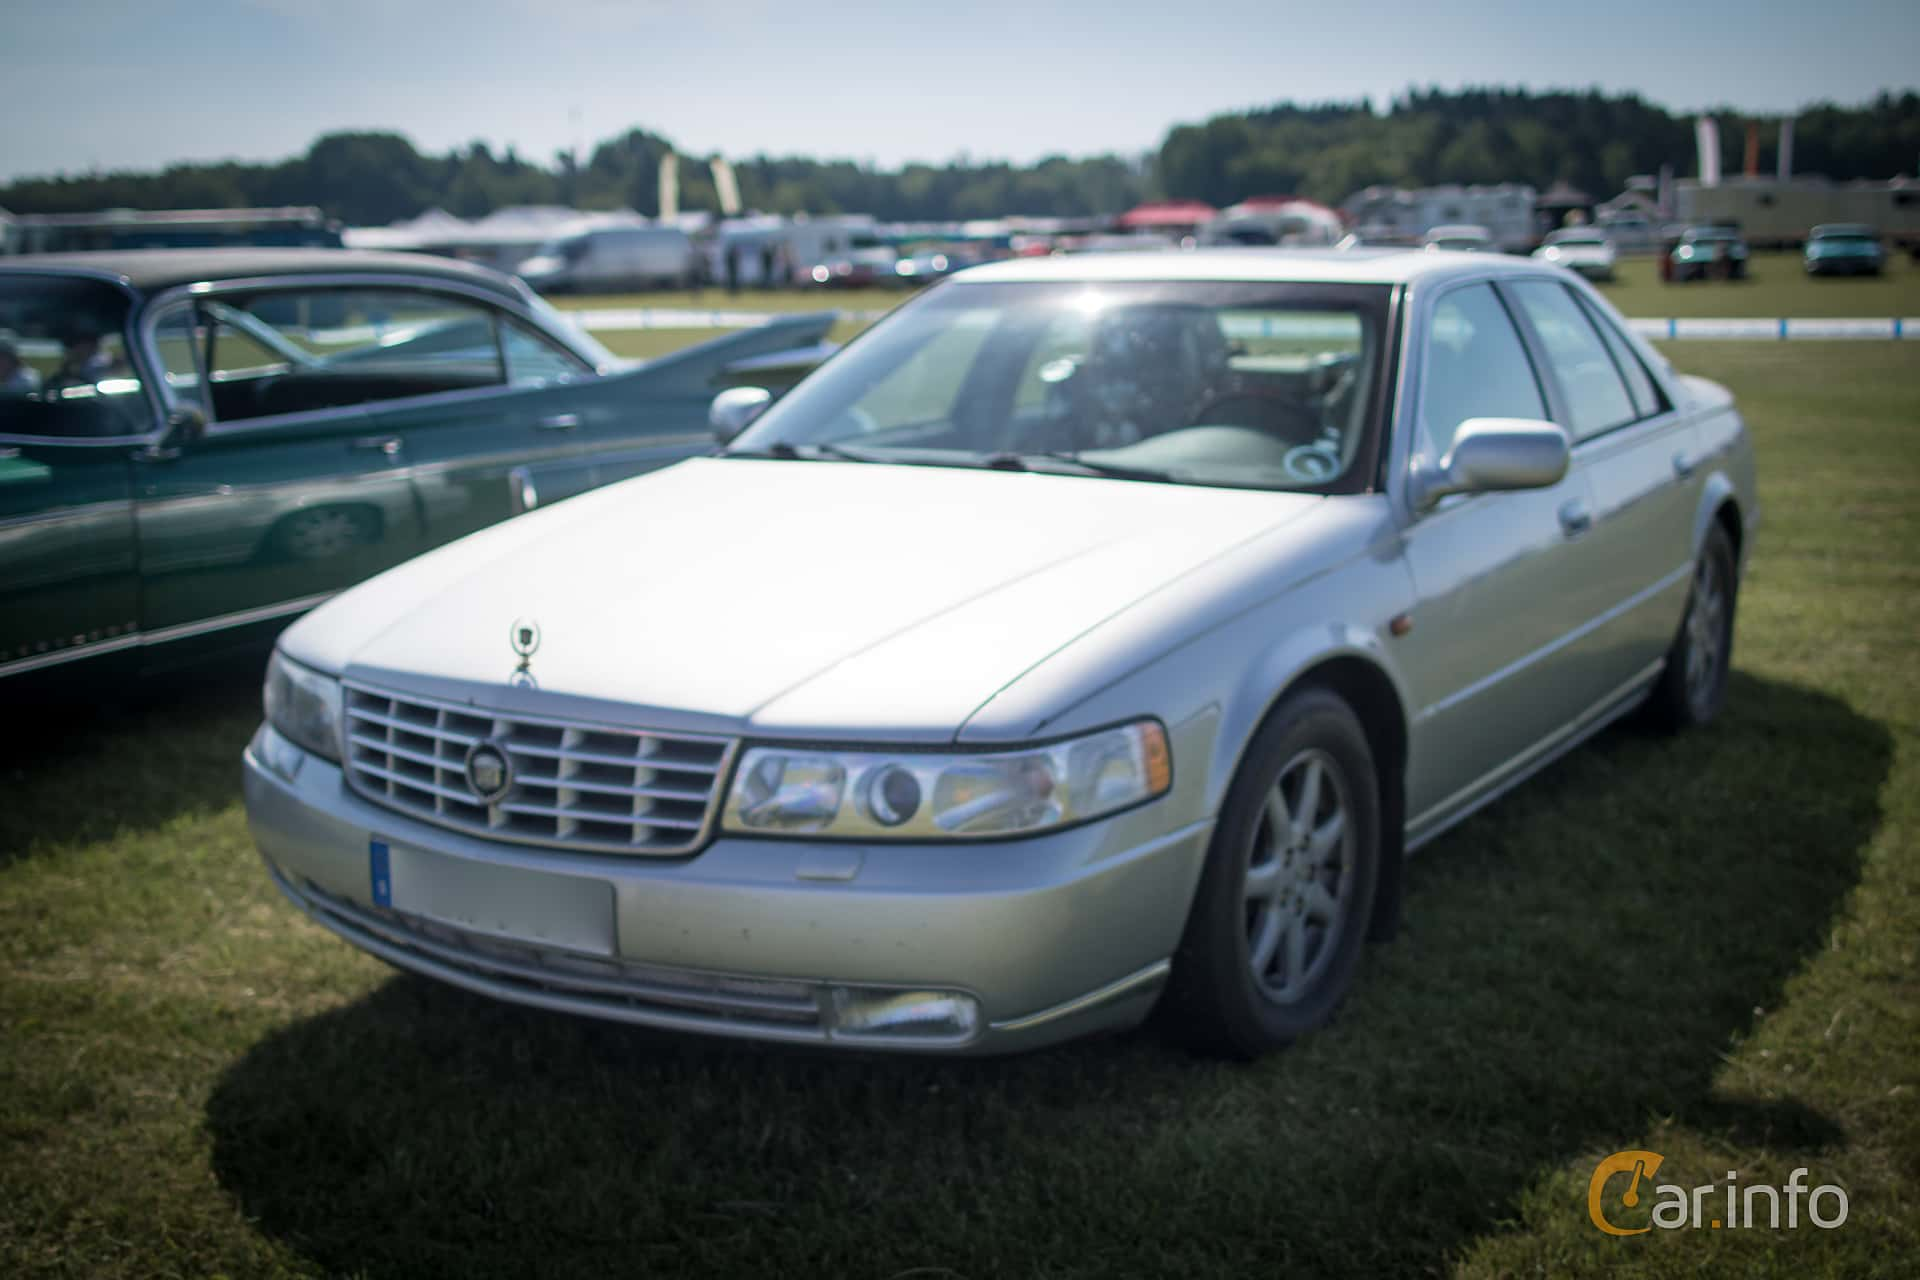 1 Images Of Cadillac Seville Sts 4 6 V8 Automatic 305hp 2001 By